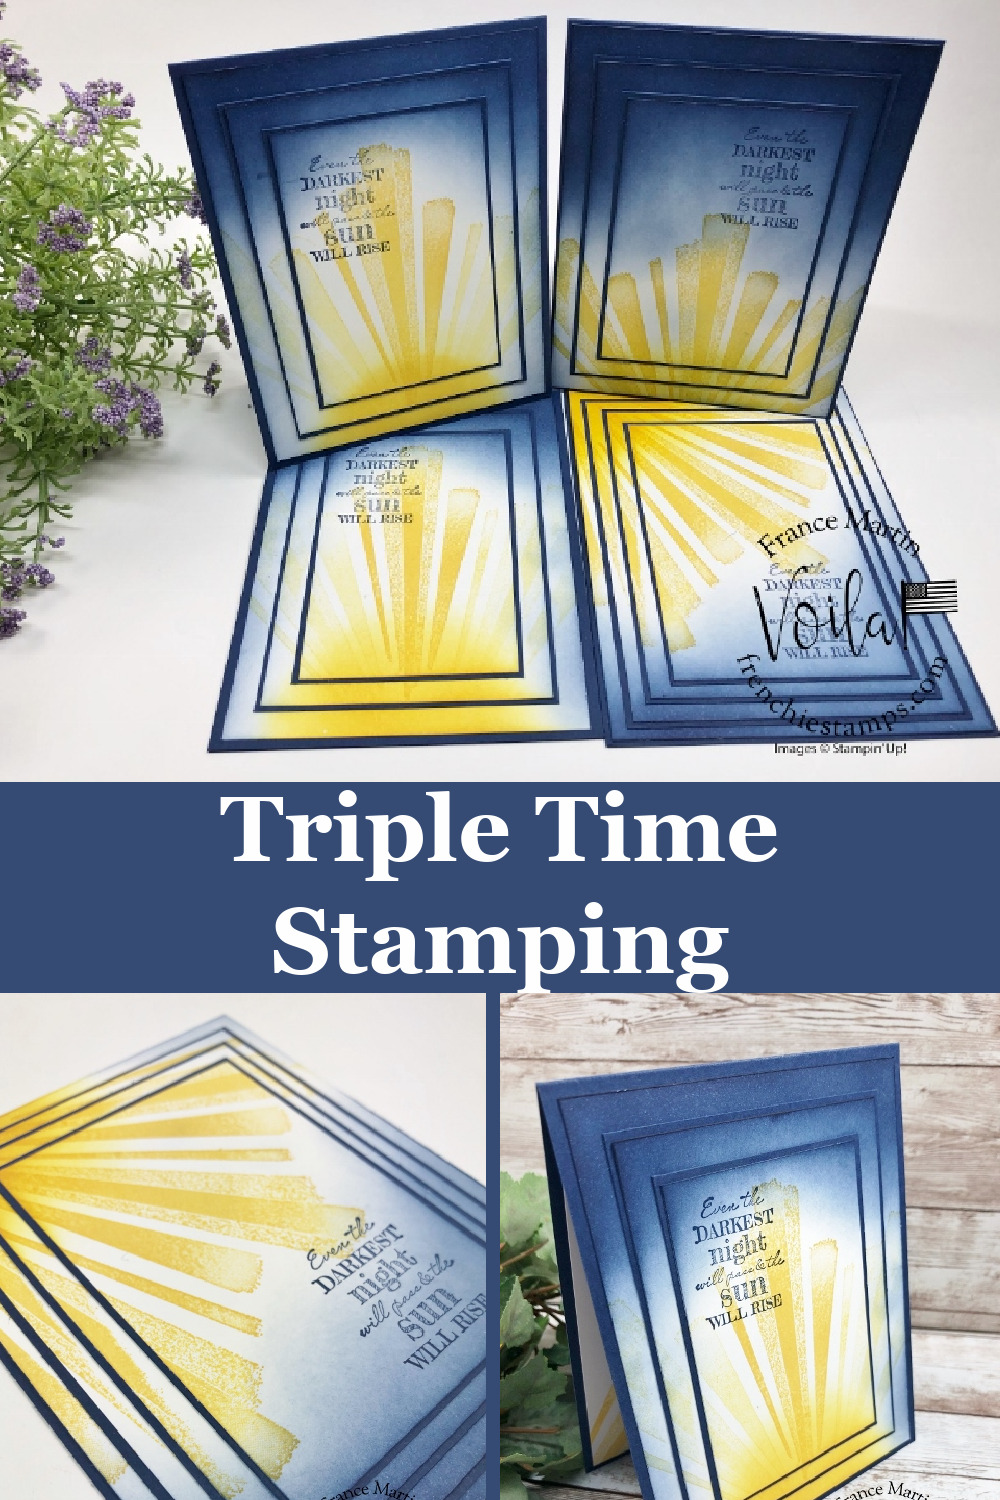 Triple Time Stamping Technique With After the Storm Stamp Set.